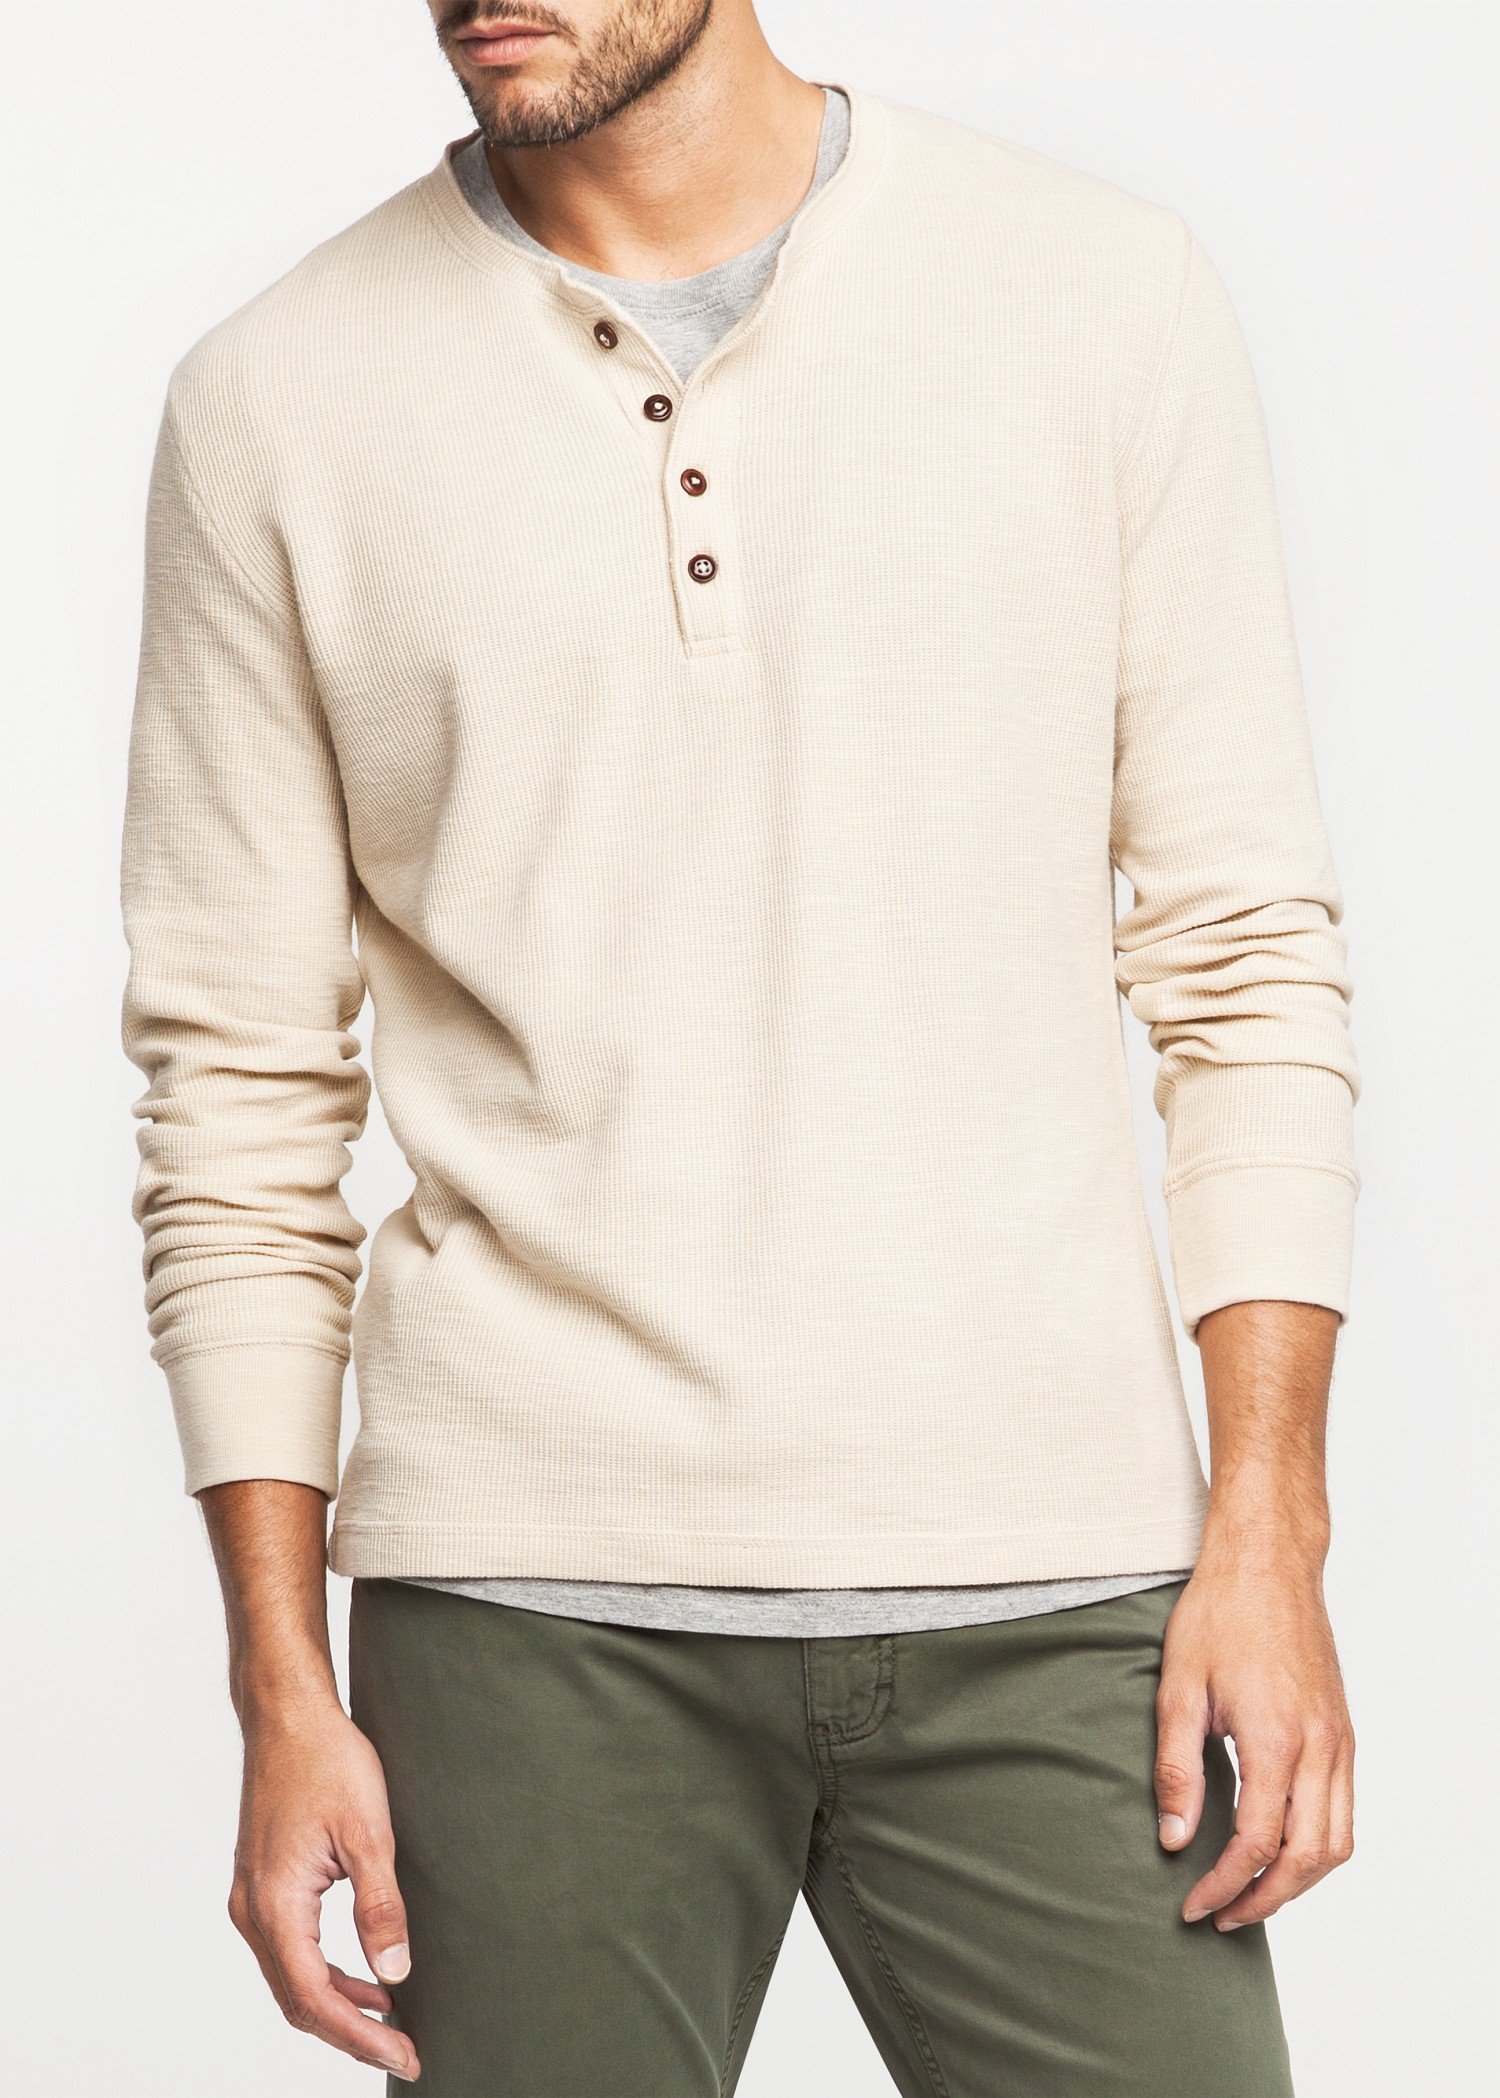 Find great deals on eBay for mens cream dress shirt. Shop with confidence.